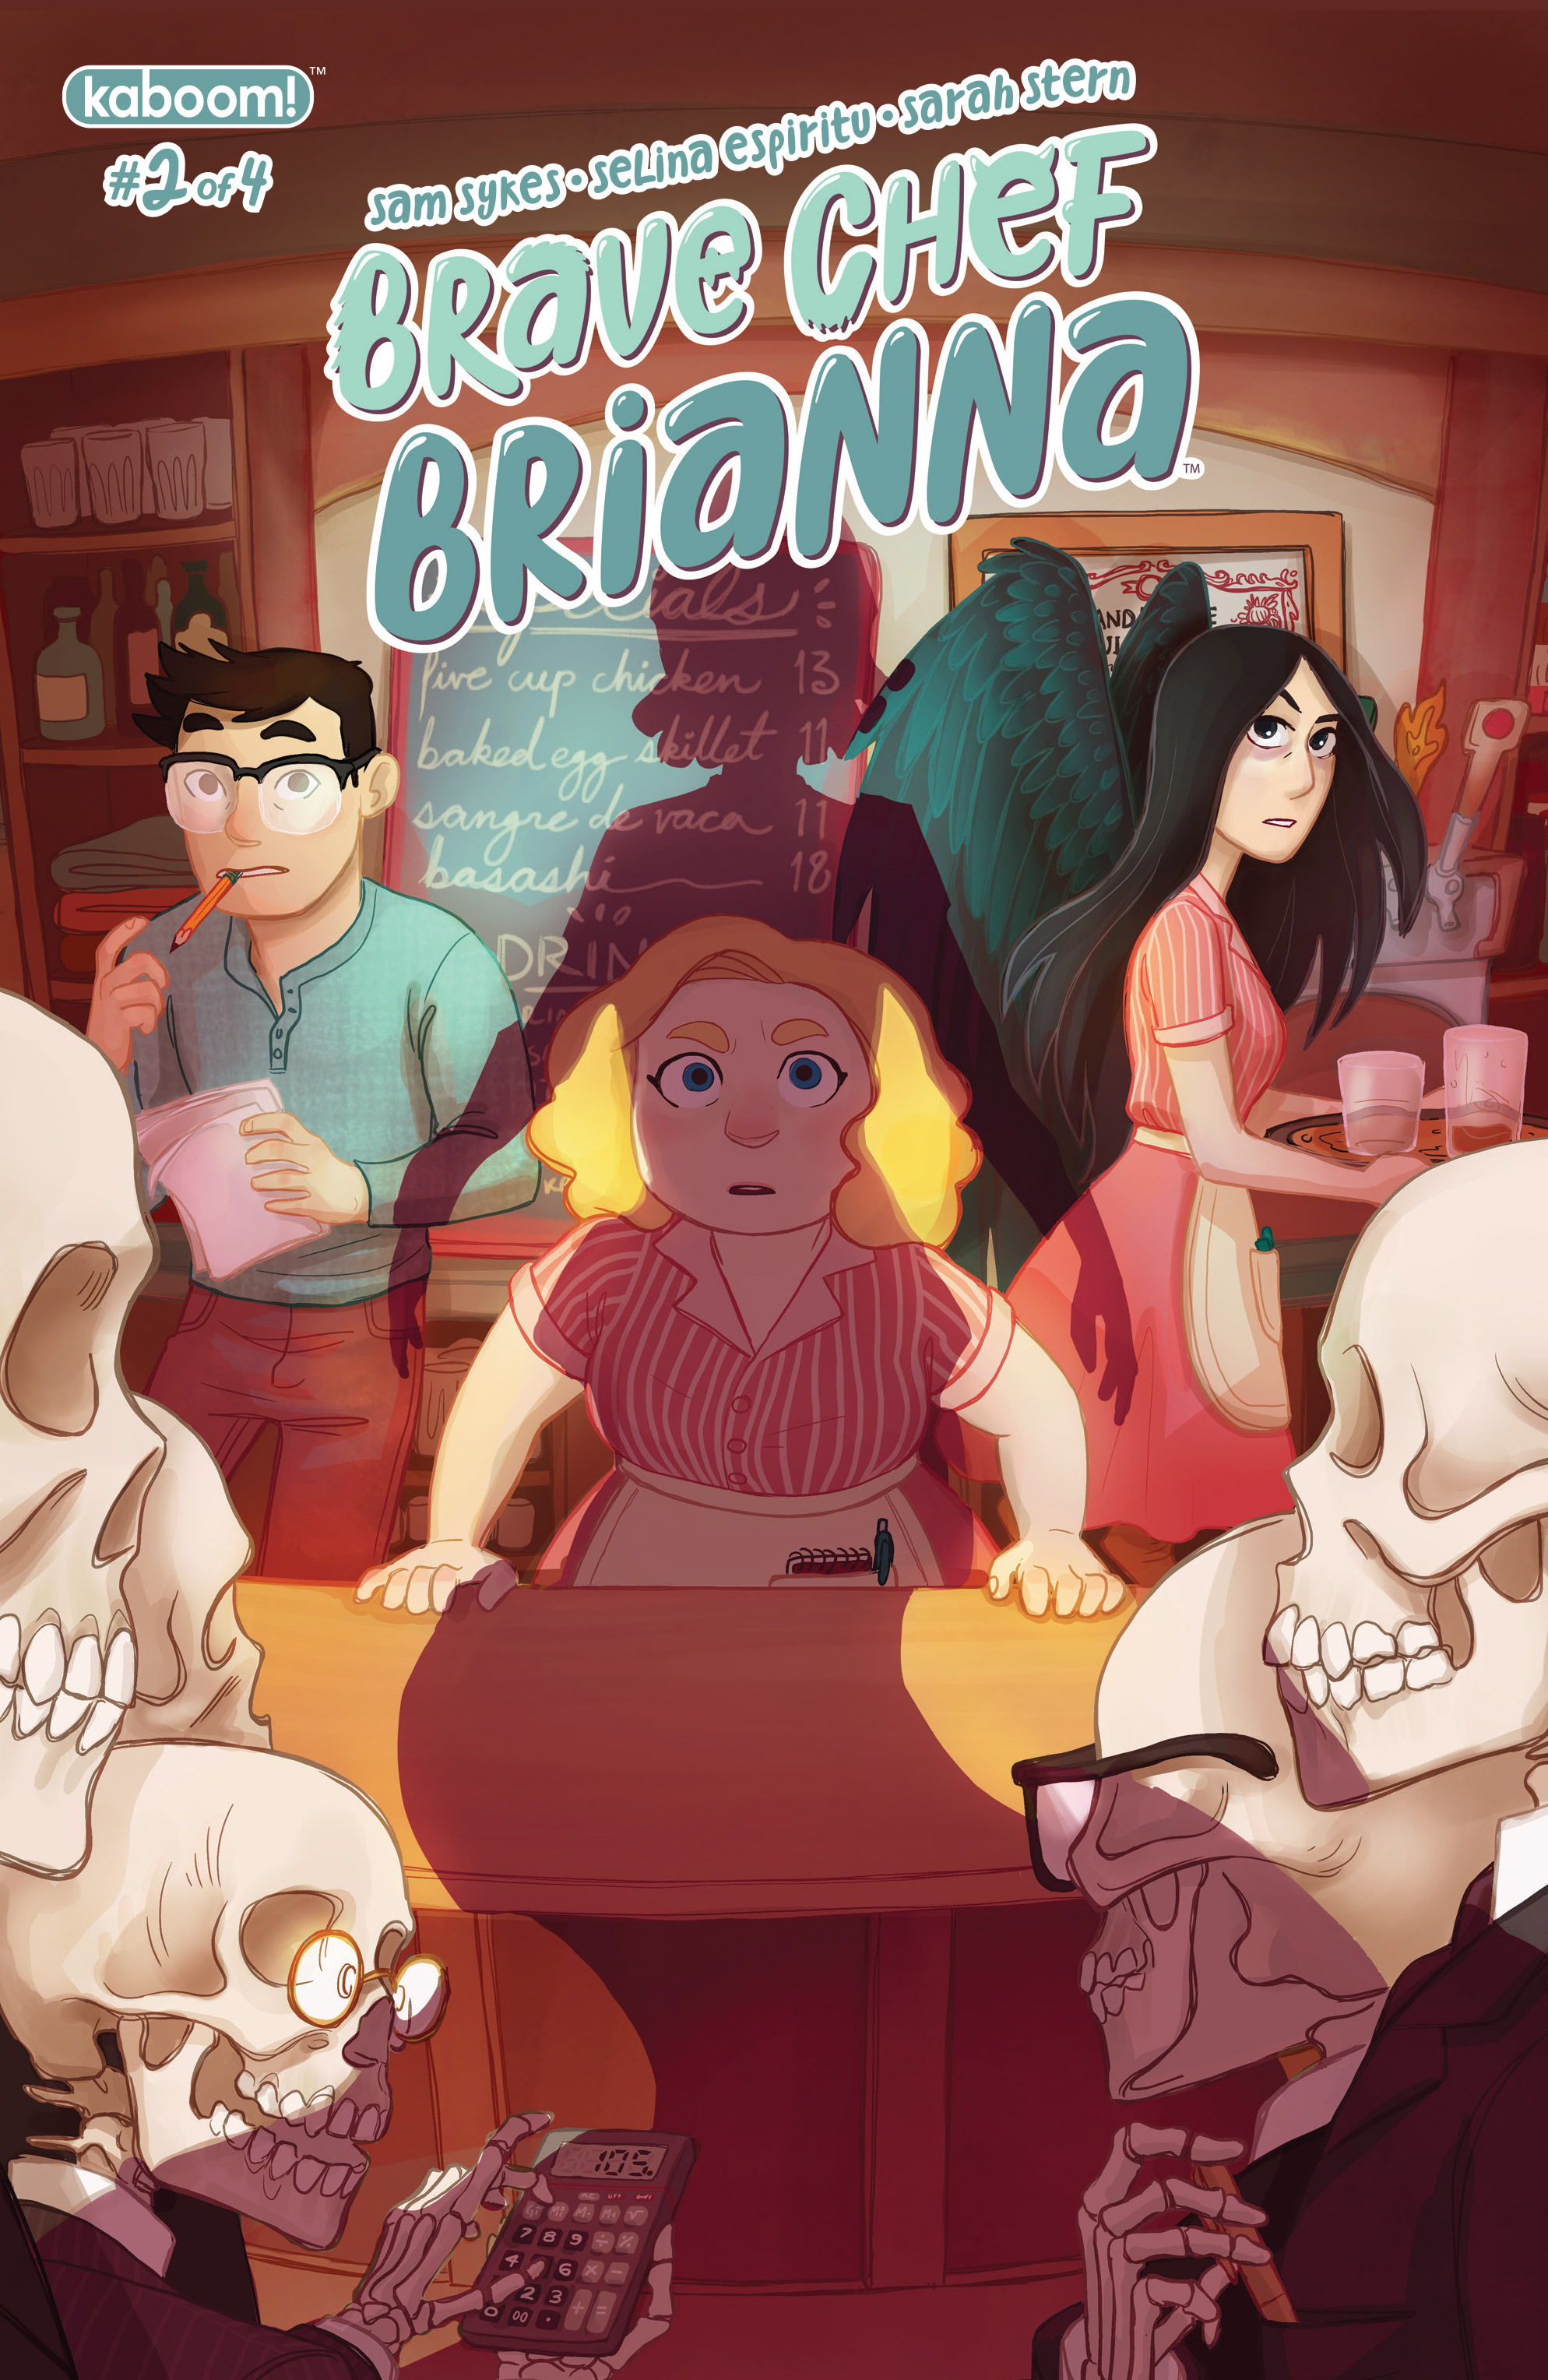 Read online Brave Chef Brianna comic -  Issue #2 - 1